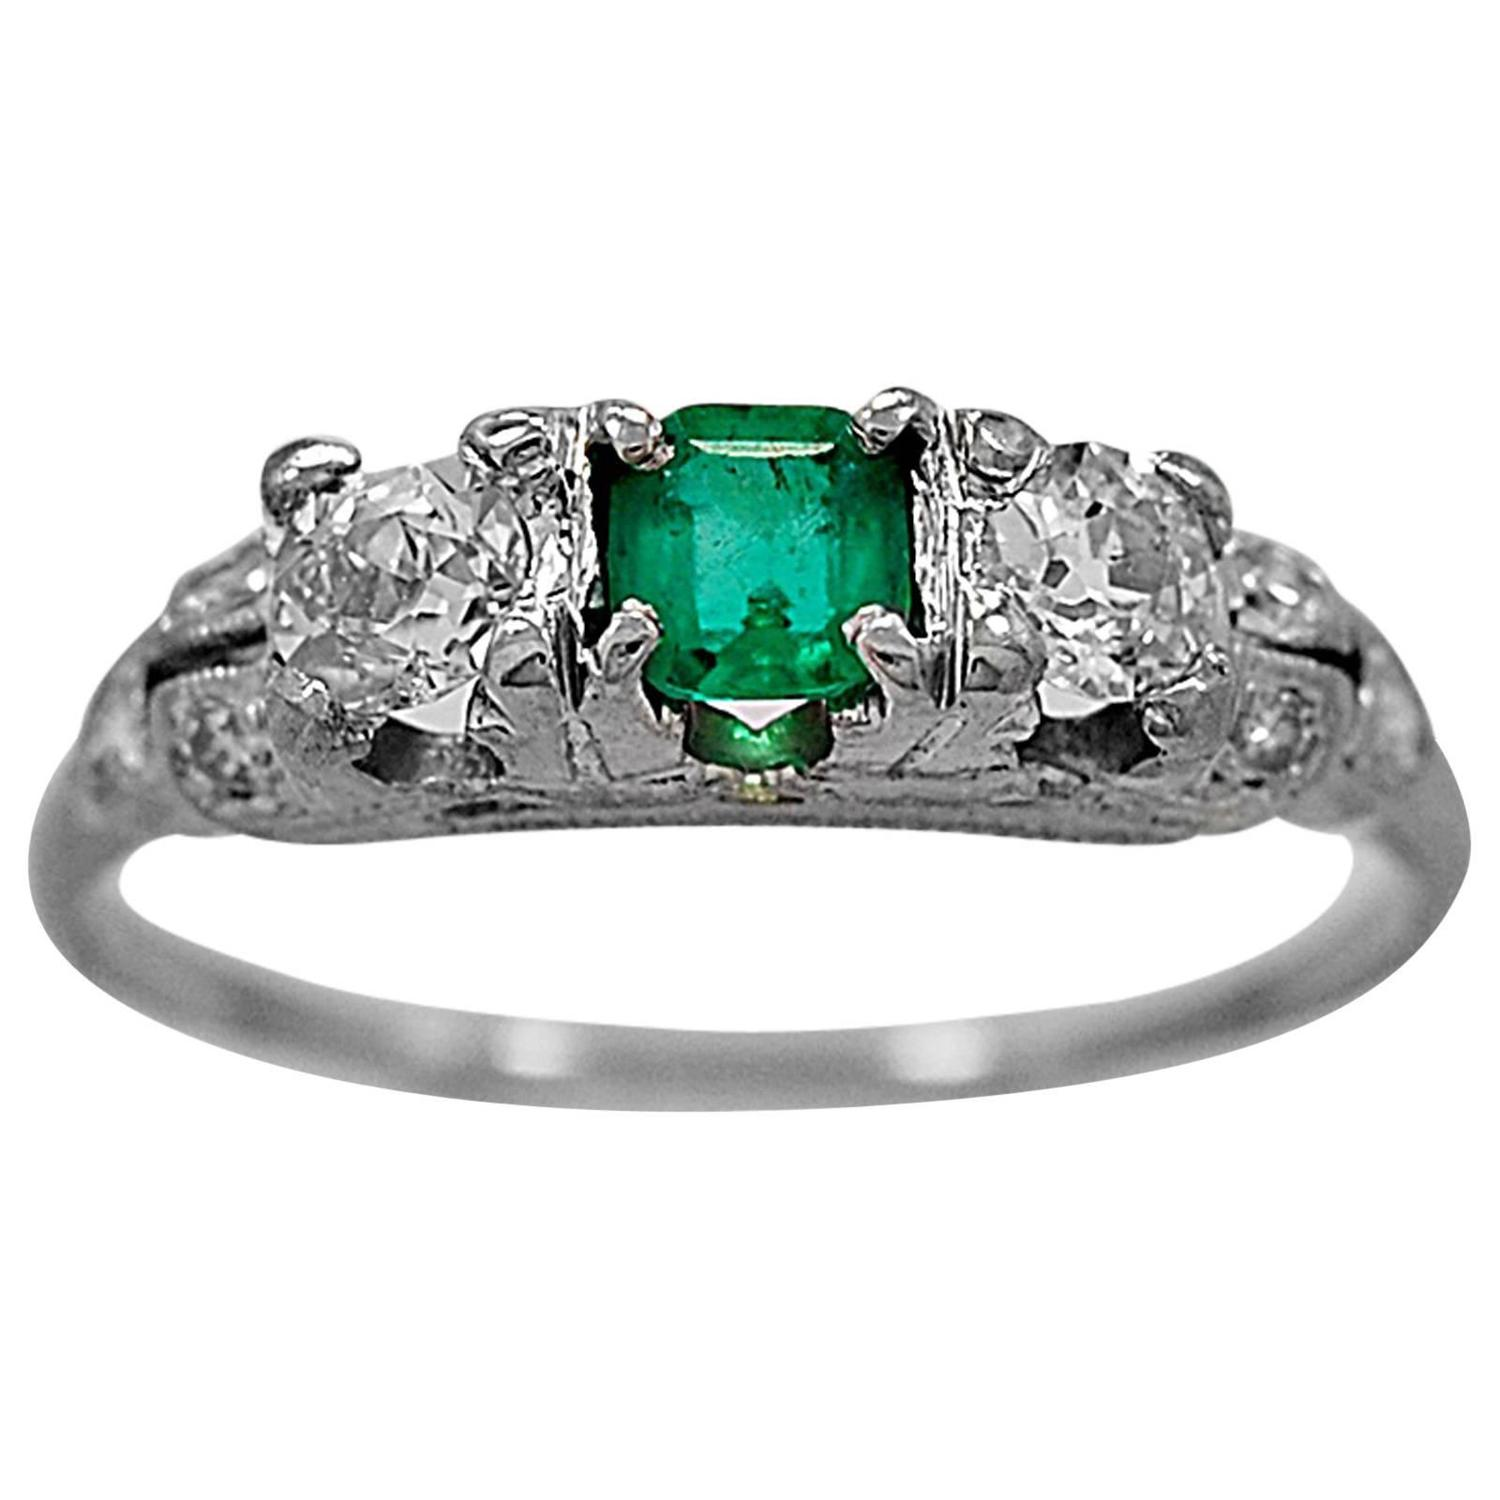 Antique Engagement Rings For Sale: Antique Emerald Diamond Platinum Engagement Ring For Sale